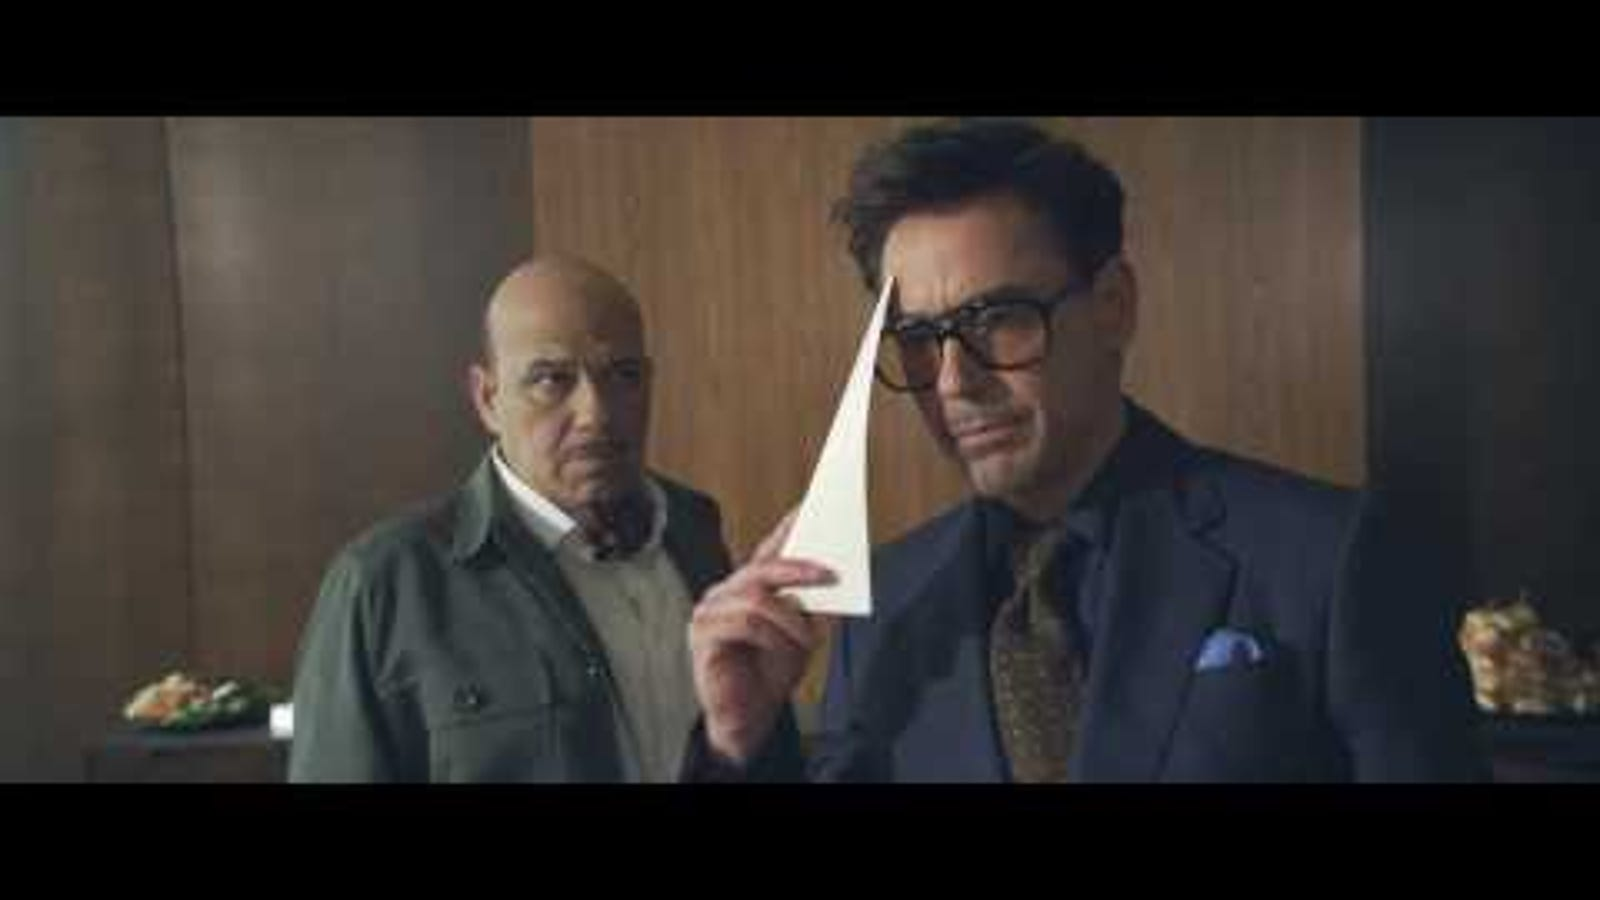 Robert Downey Jr. stars in quite possibly the year's most surreal ad